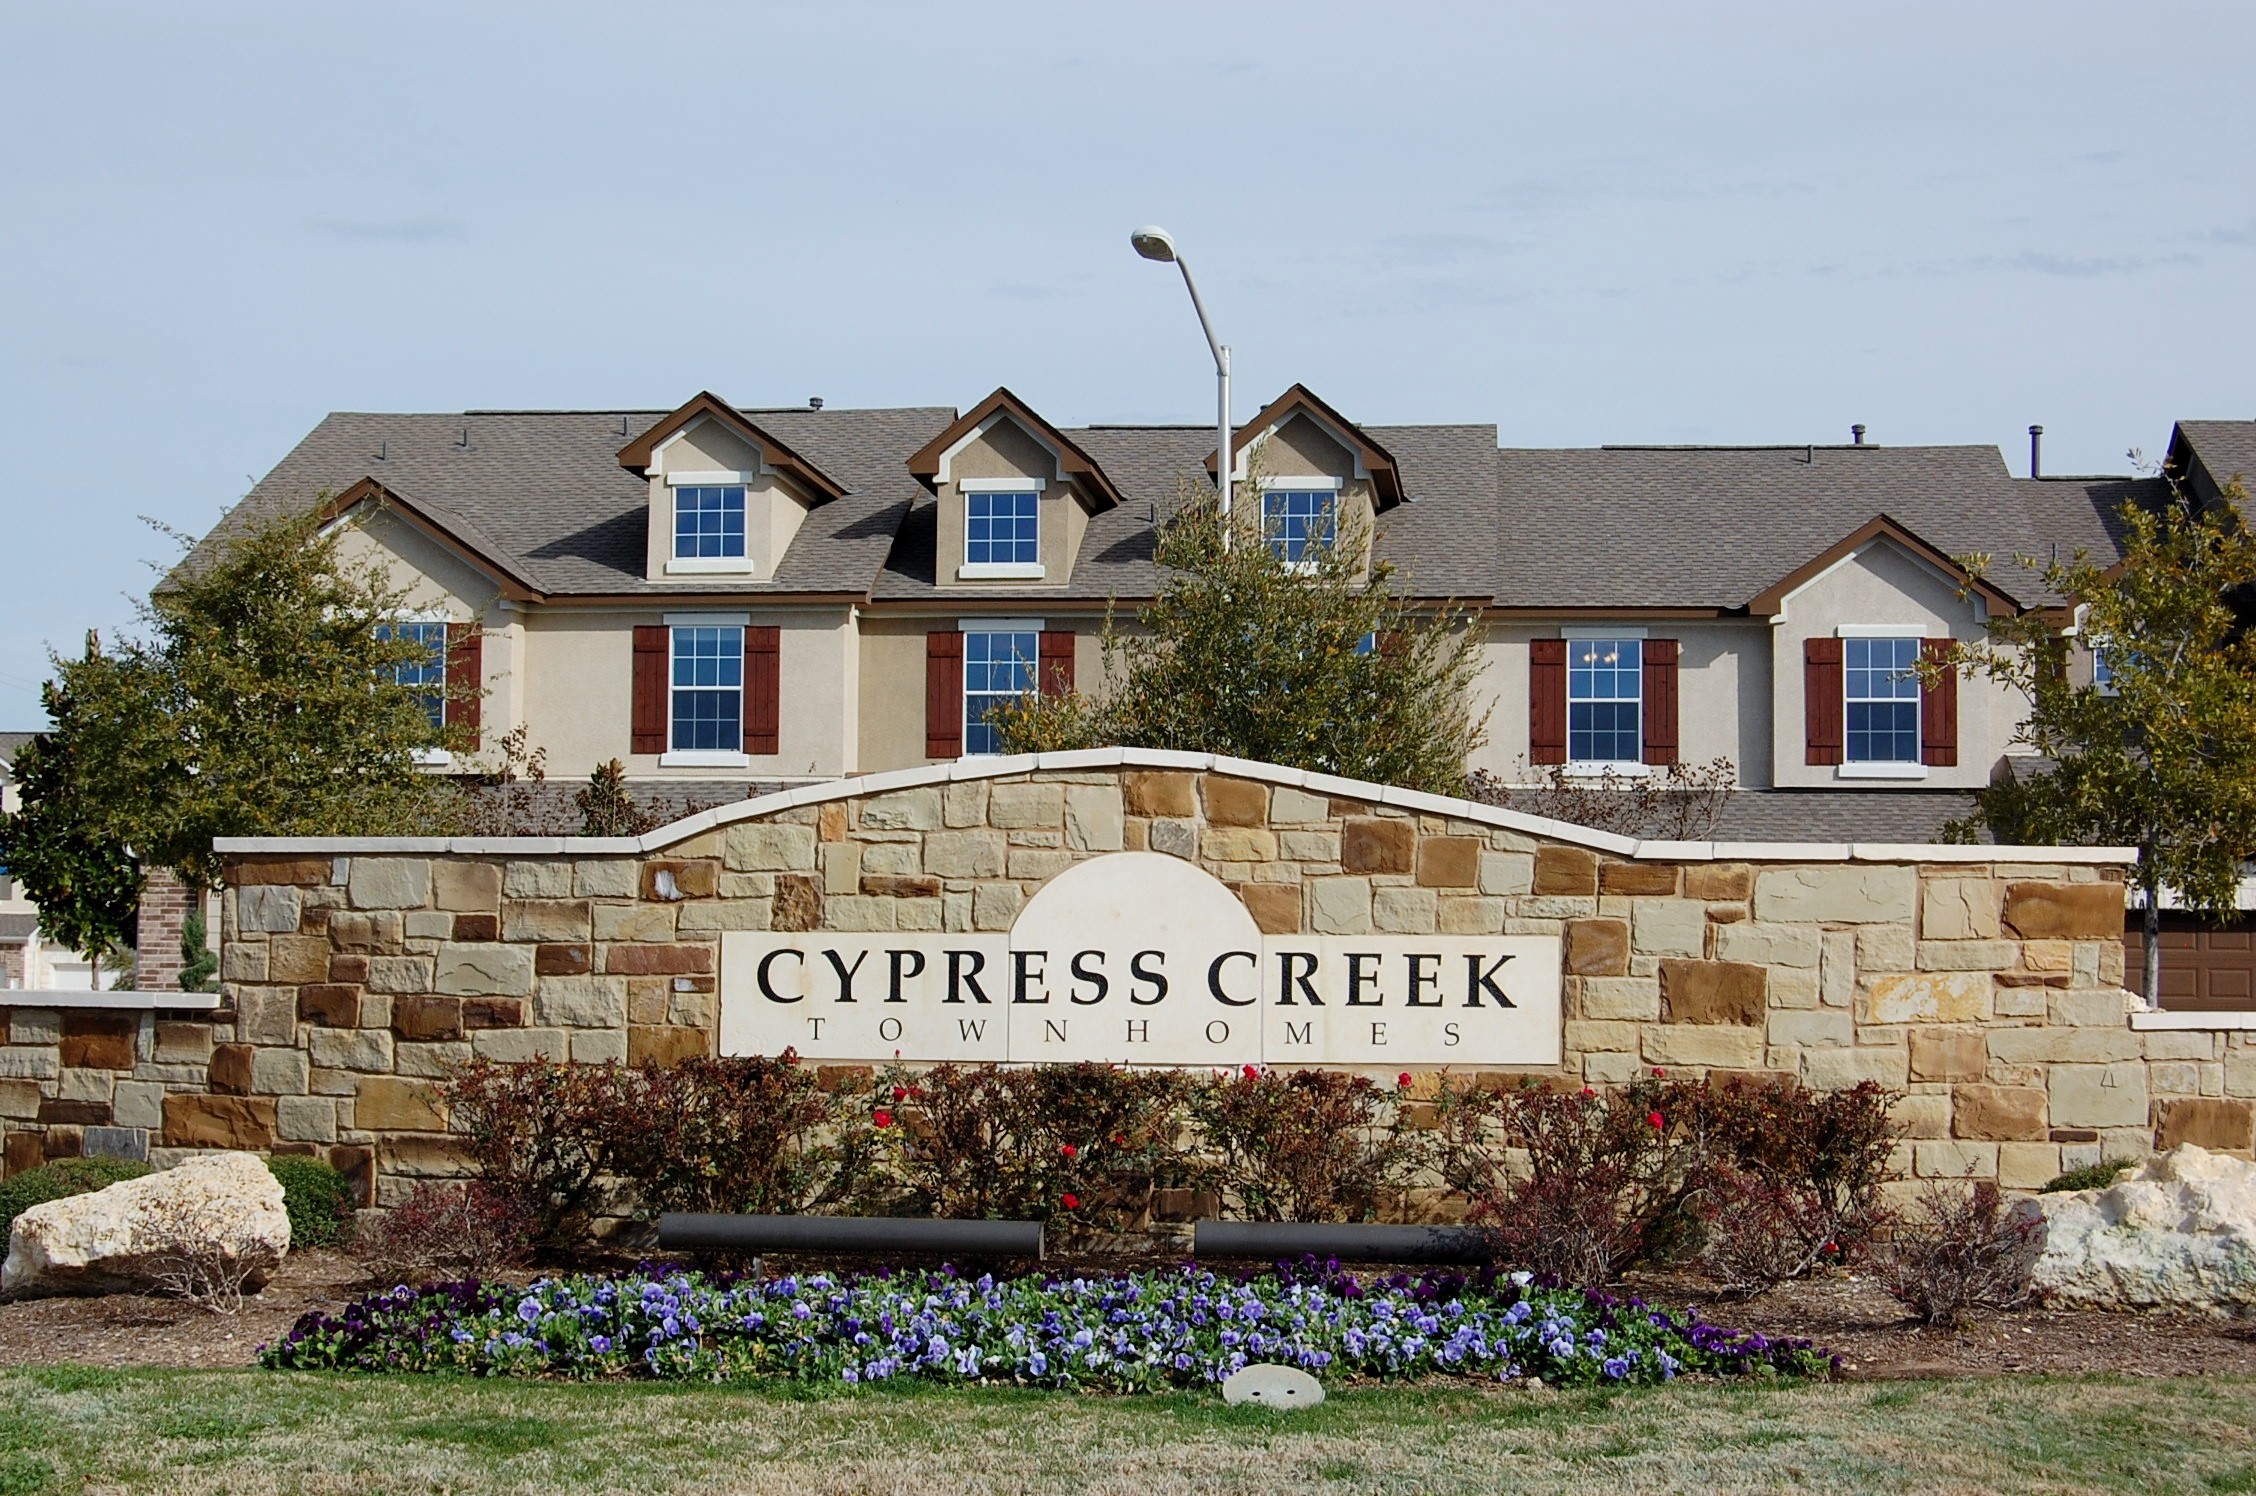 Cypress Creek Townhomes for sale in Cedar Park